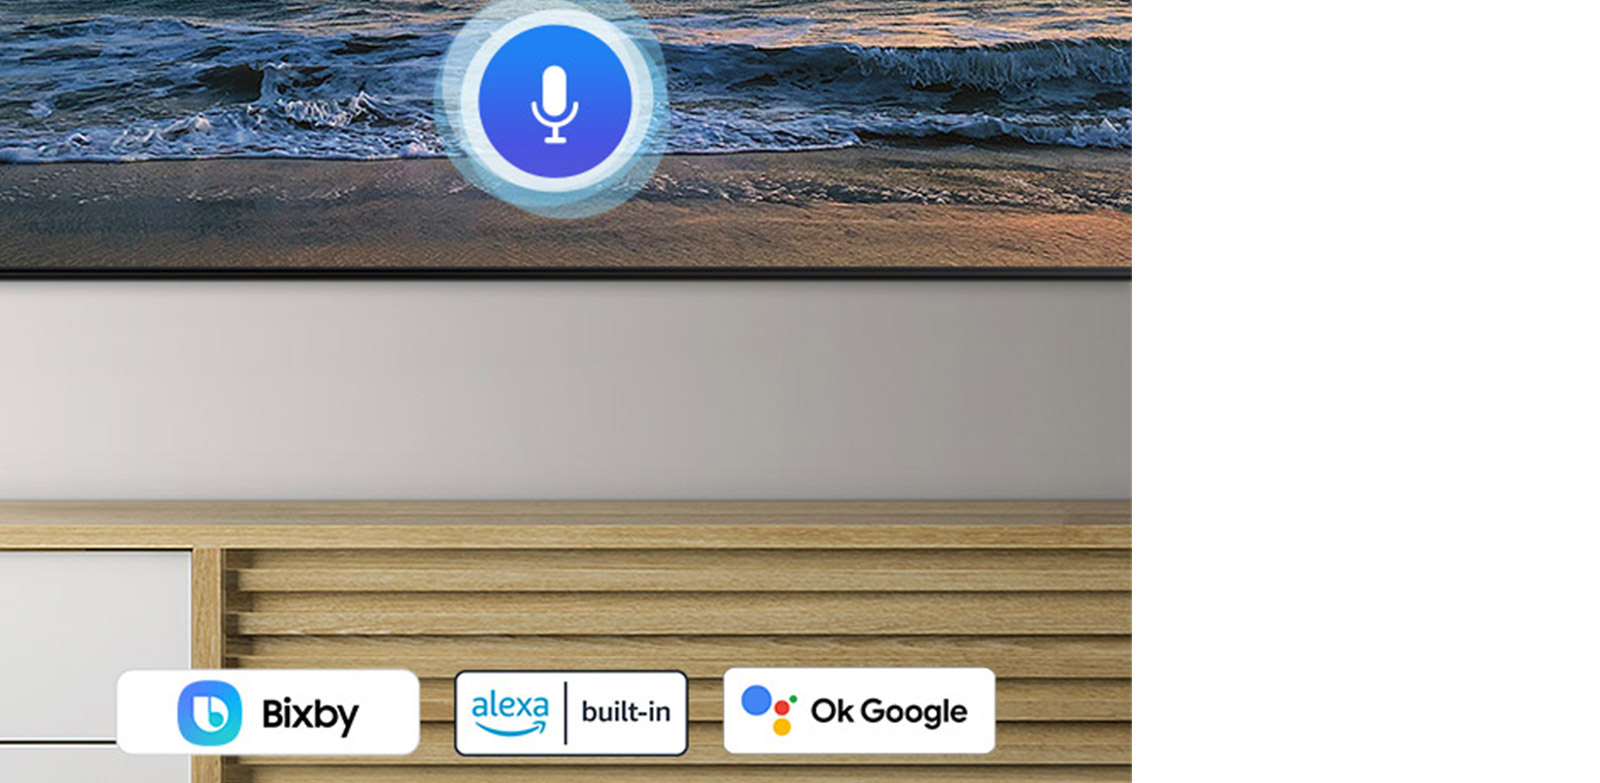 Choose whatever voice assistant you are used to Multiple Voice Assistants